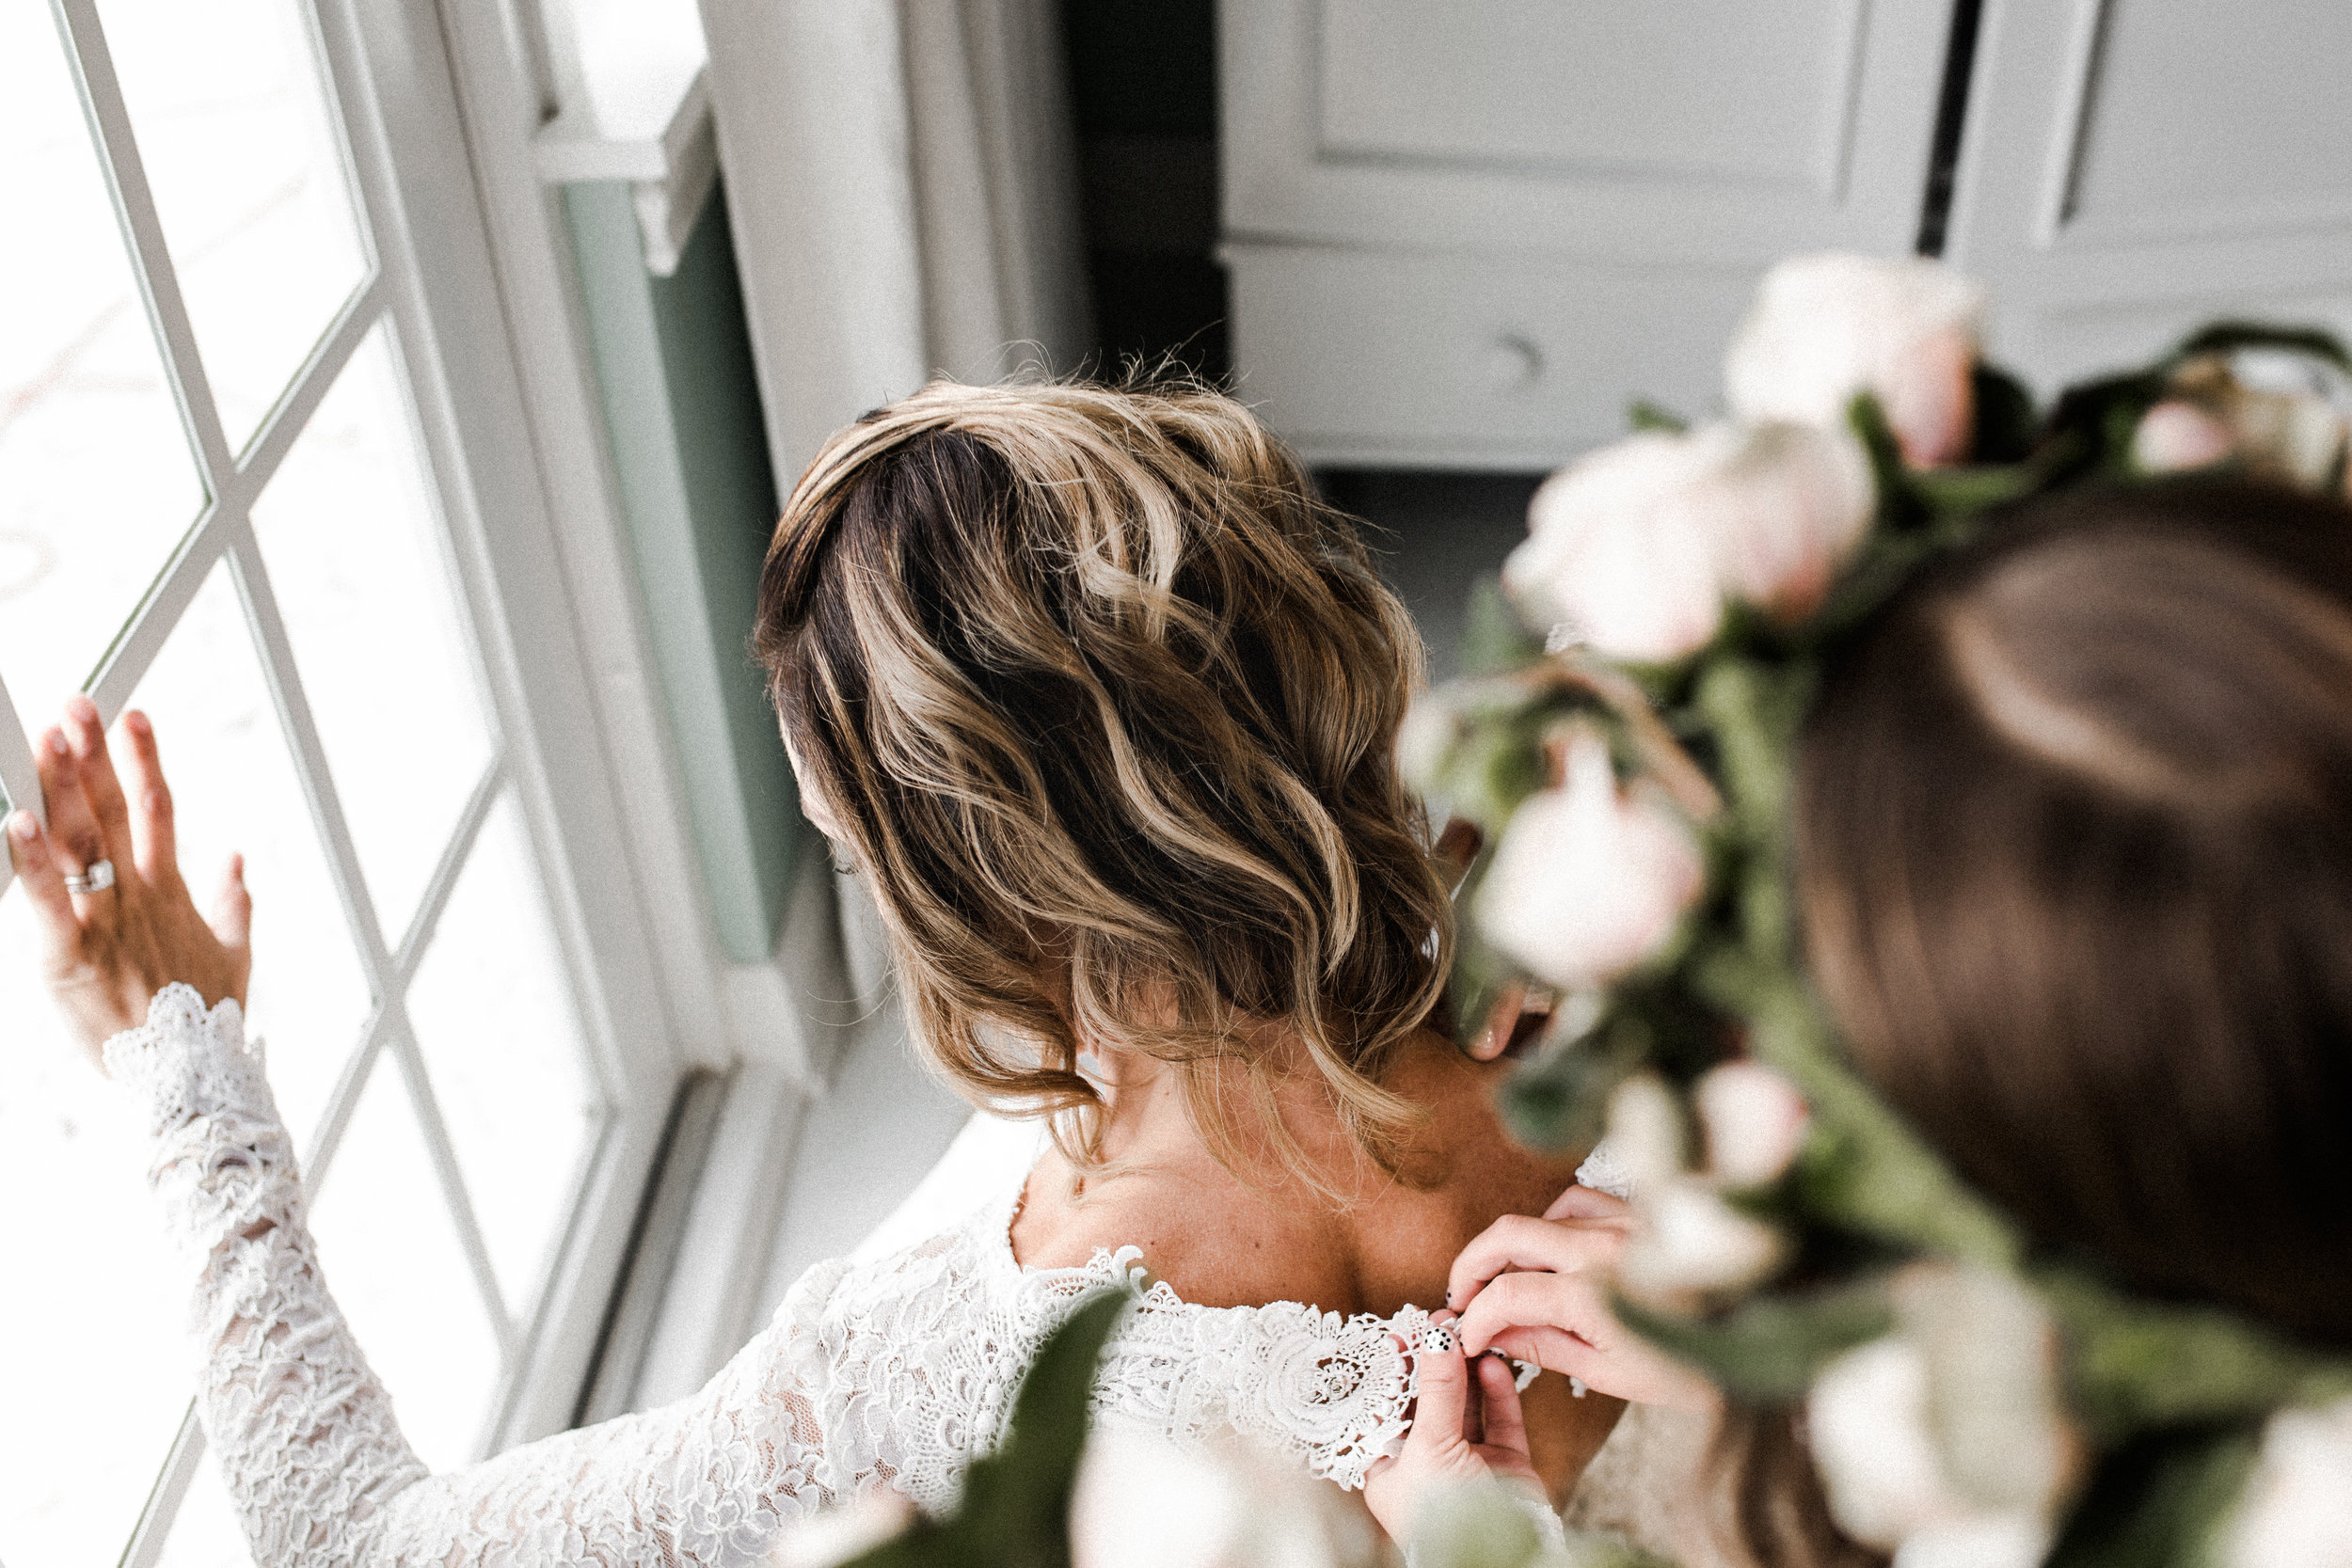 mother and daughter wedding day